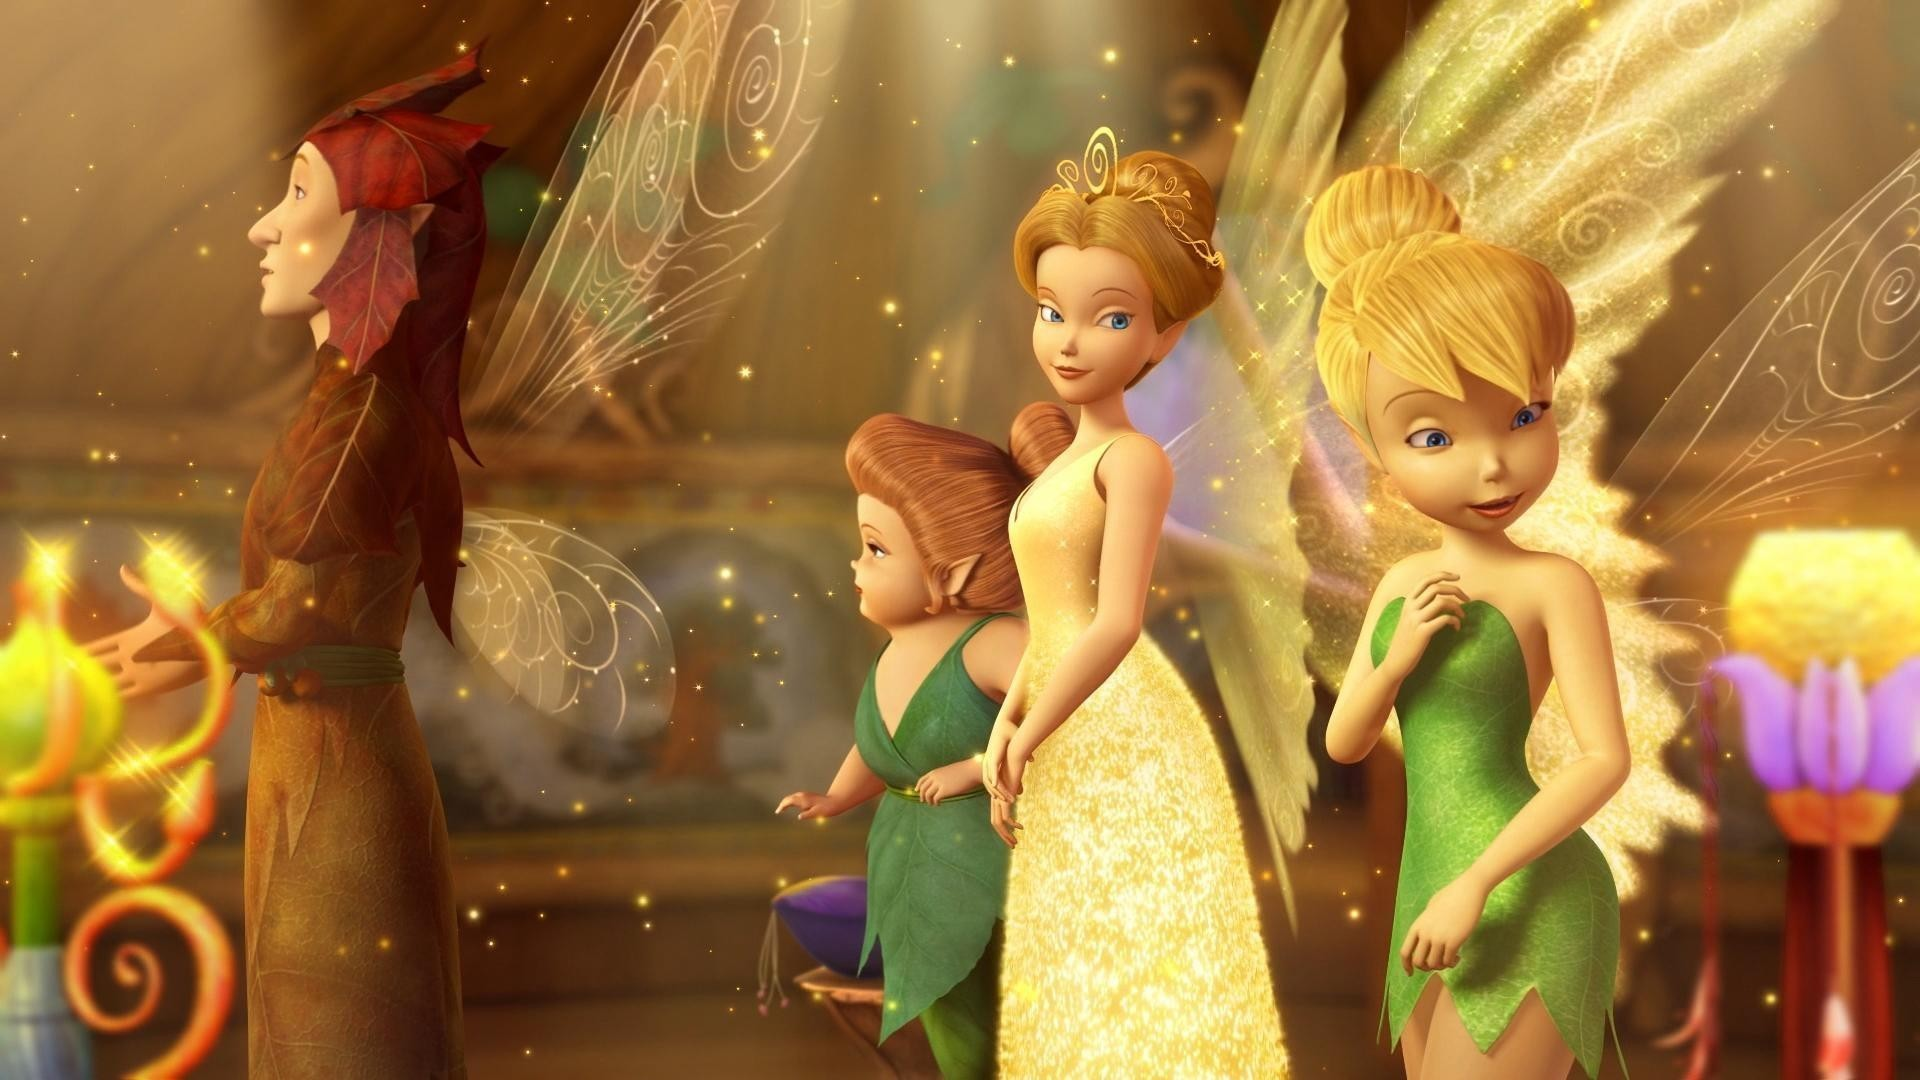 Res: 1920x1080, Tinkerbell and the Lost Treasure Wallpaper